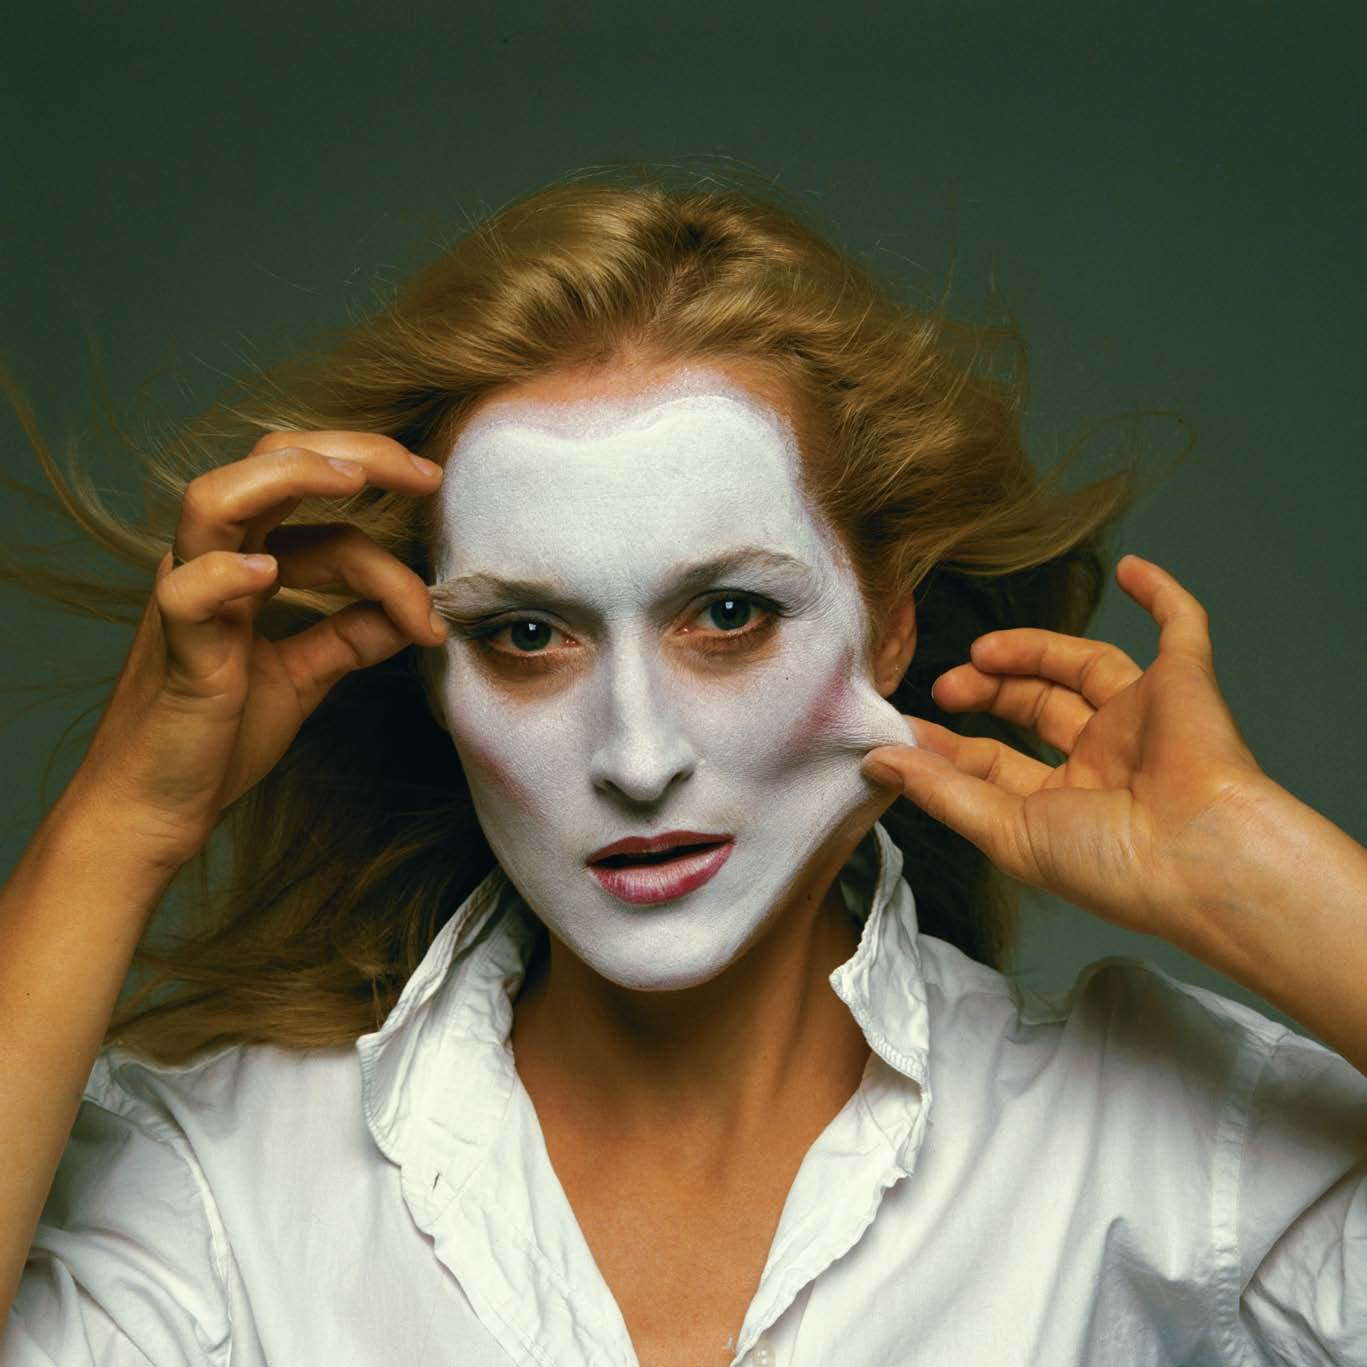 Meryl Streep (The White Top And Facemask Is A Symbol Of An Angelic